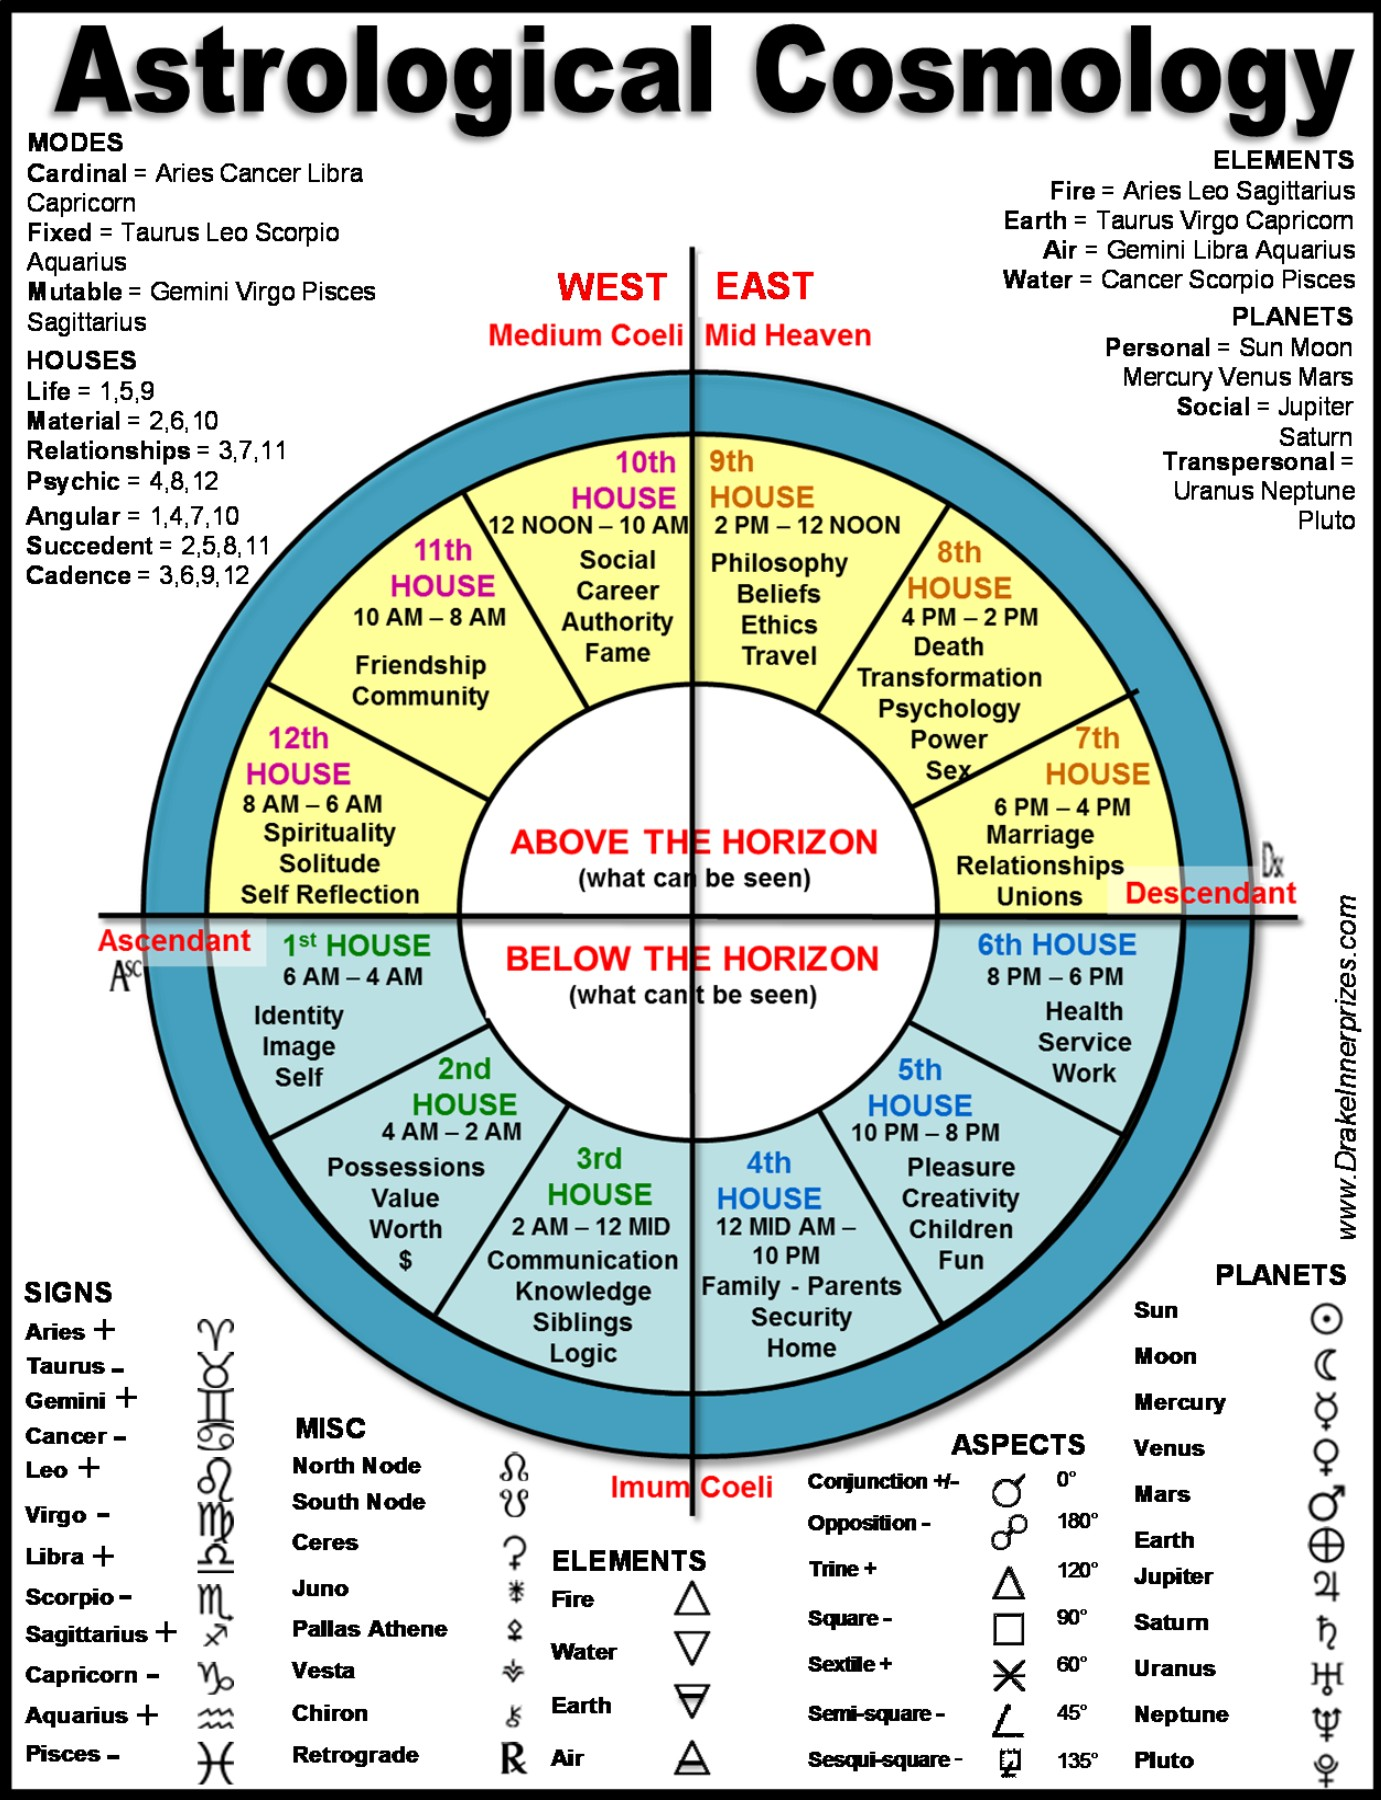 Astrology Compatibility Love Meter Laws Of Attractiondvdrip2004